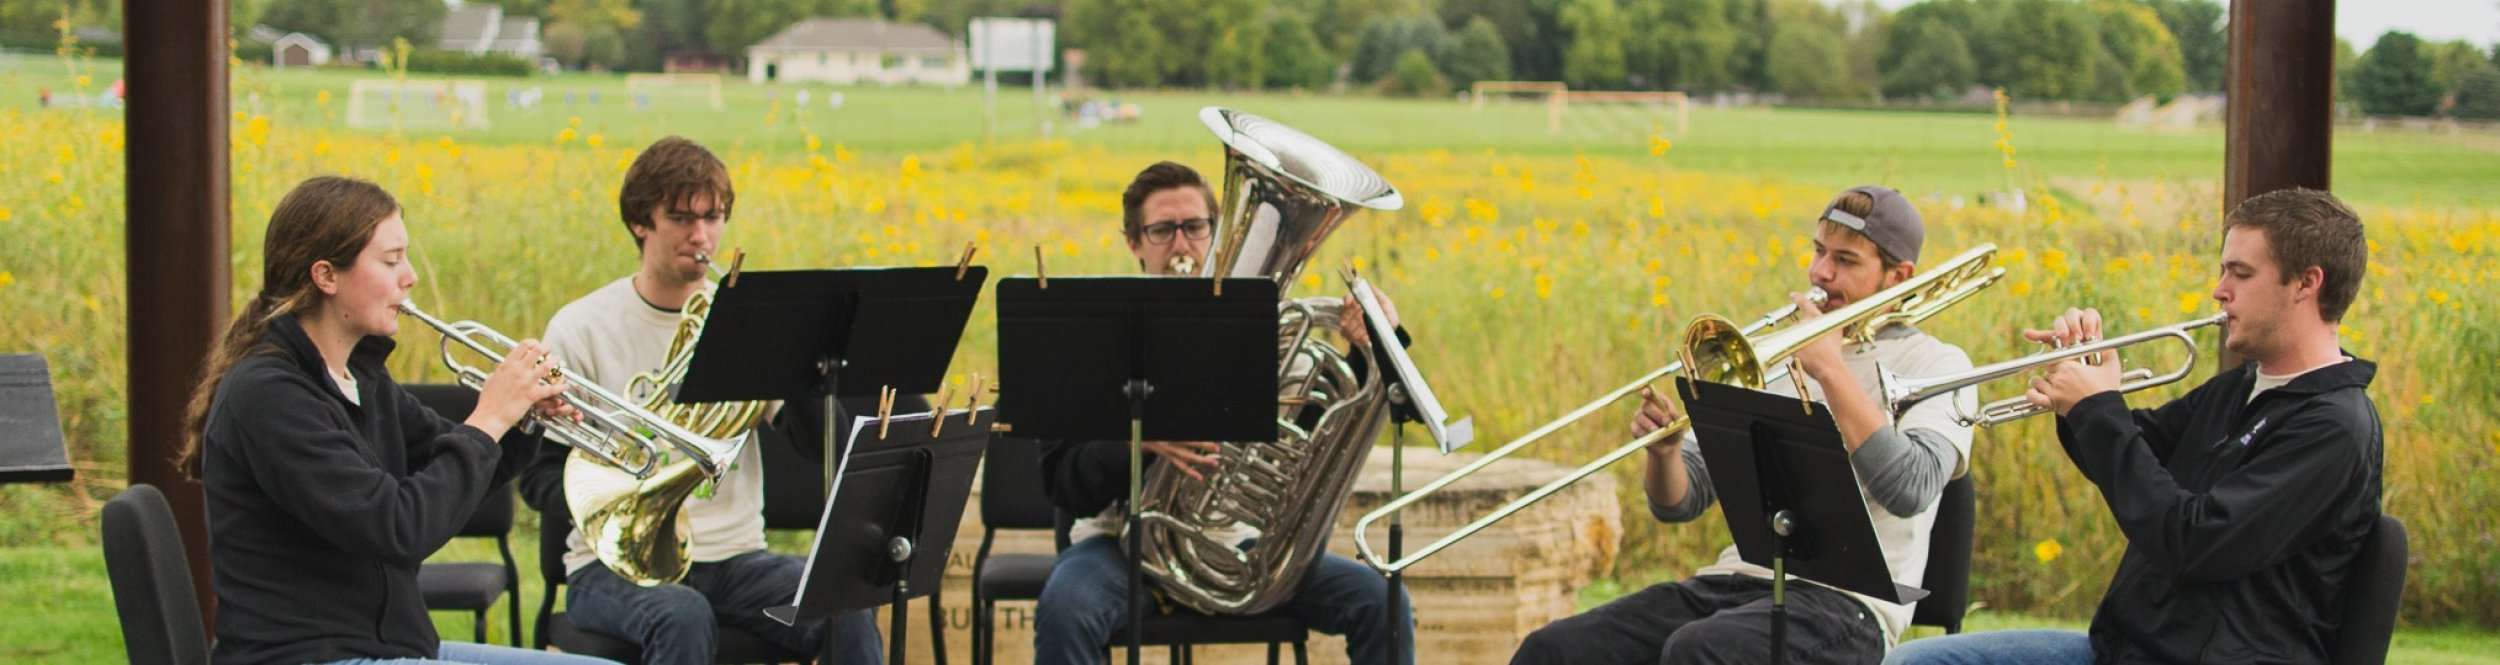 Four brass instrument players sit in a prairie playing their instruments.